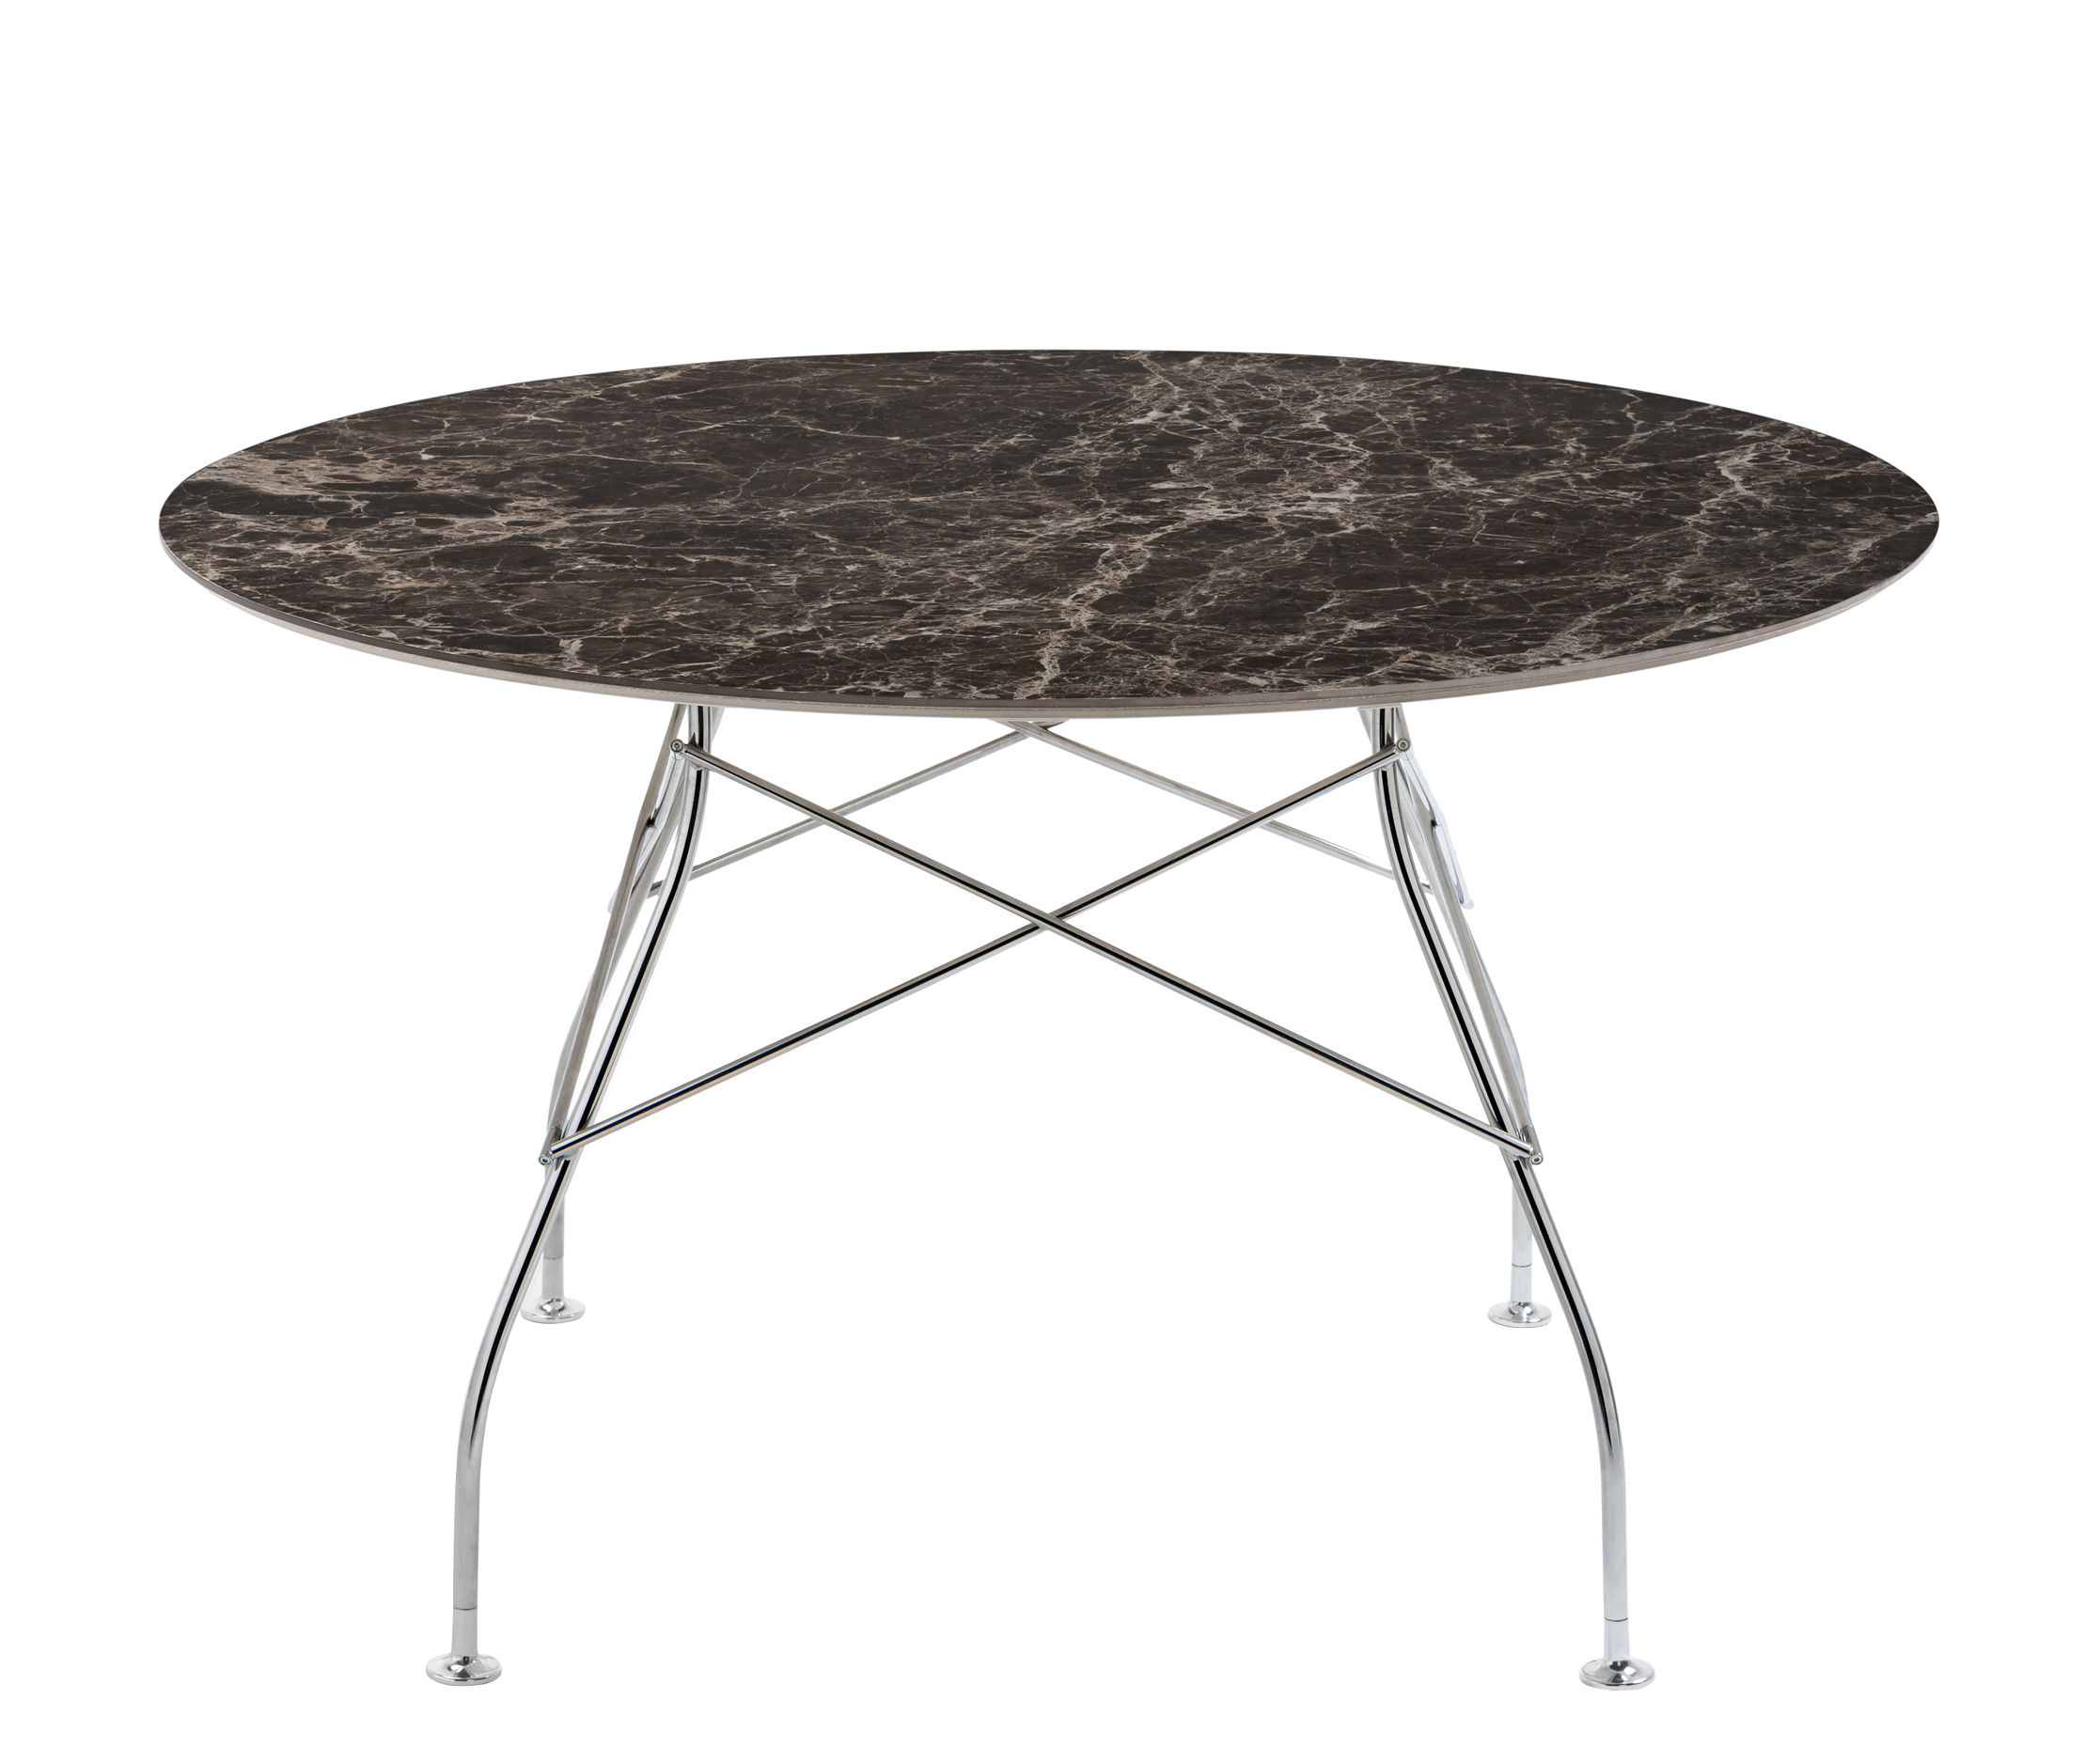 Trends - Take your seat! - Glossy Marble Round table - / Ø 128 cm- Marble-effect sandstone by Kartell - Brown / Chromed leg - Chromed steel, Marble-effect sandstone